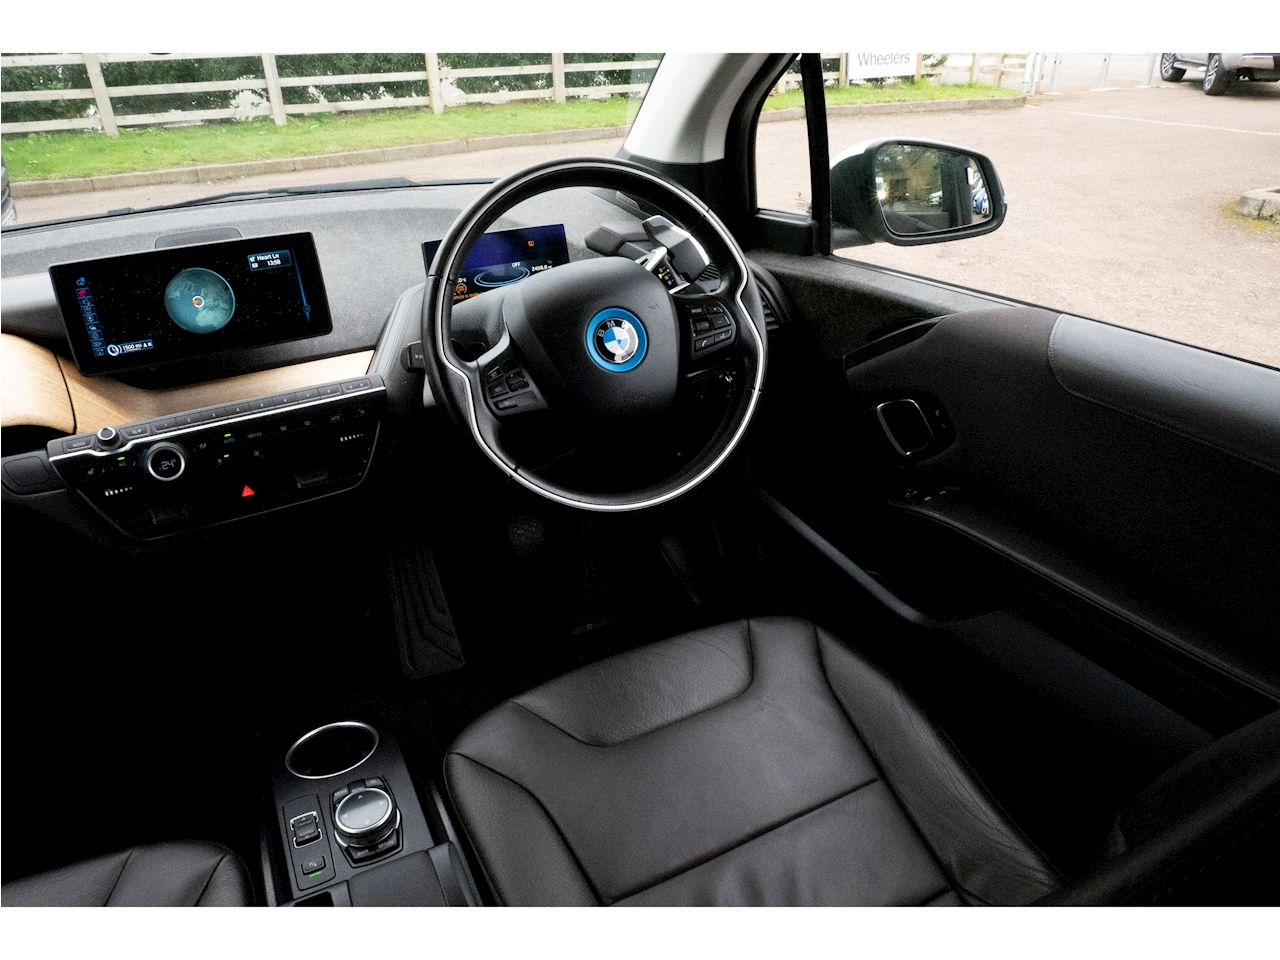 BMW I3 I3 Range Extender Hatchback 0.6 Automatic Petrol/Electric